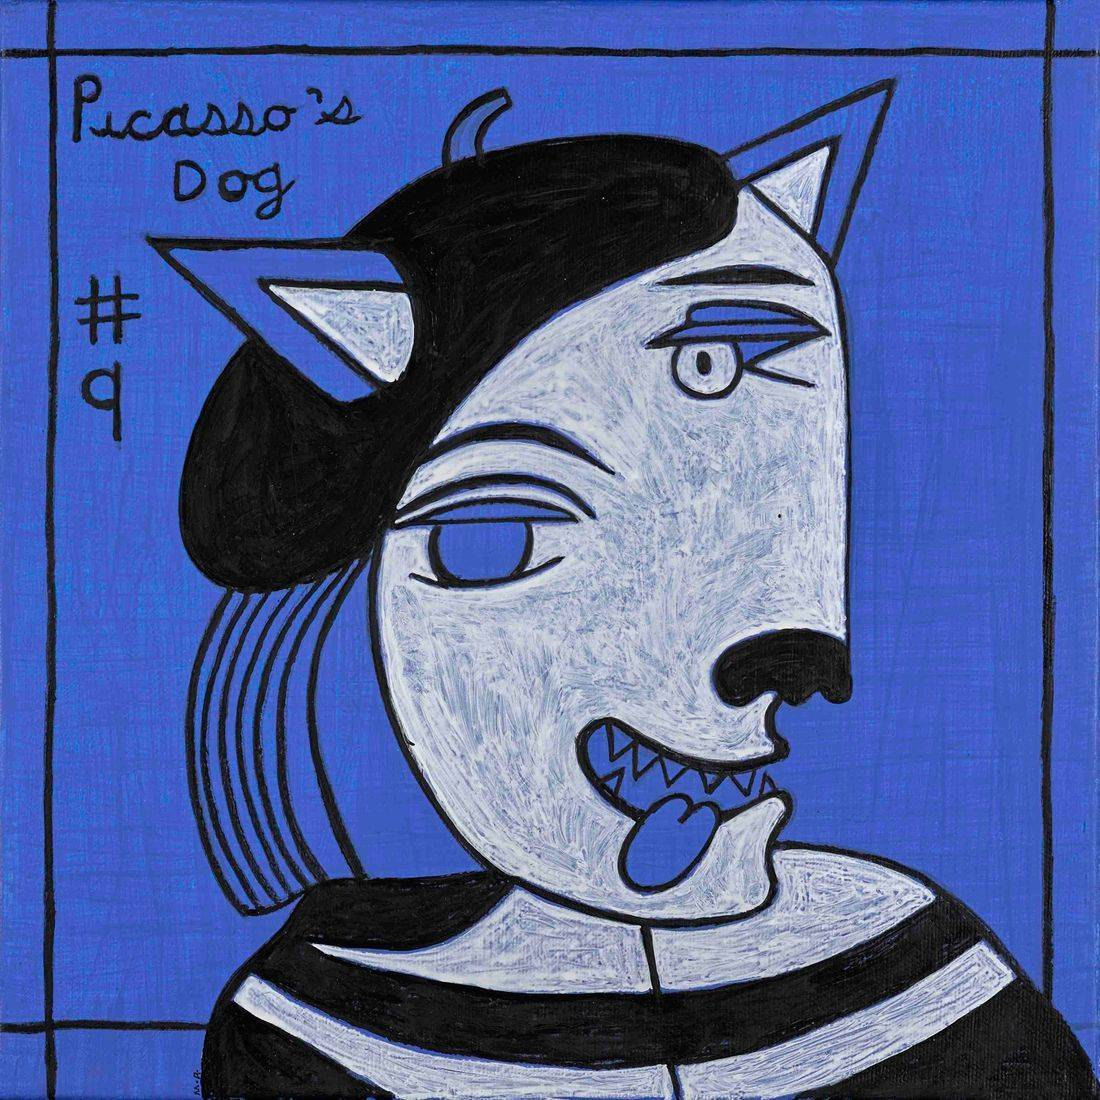 Picasso, Dogs, Picasso's Dogs, Beret